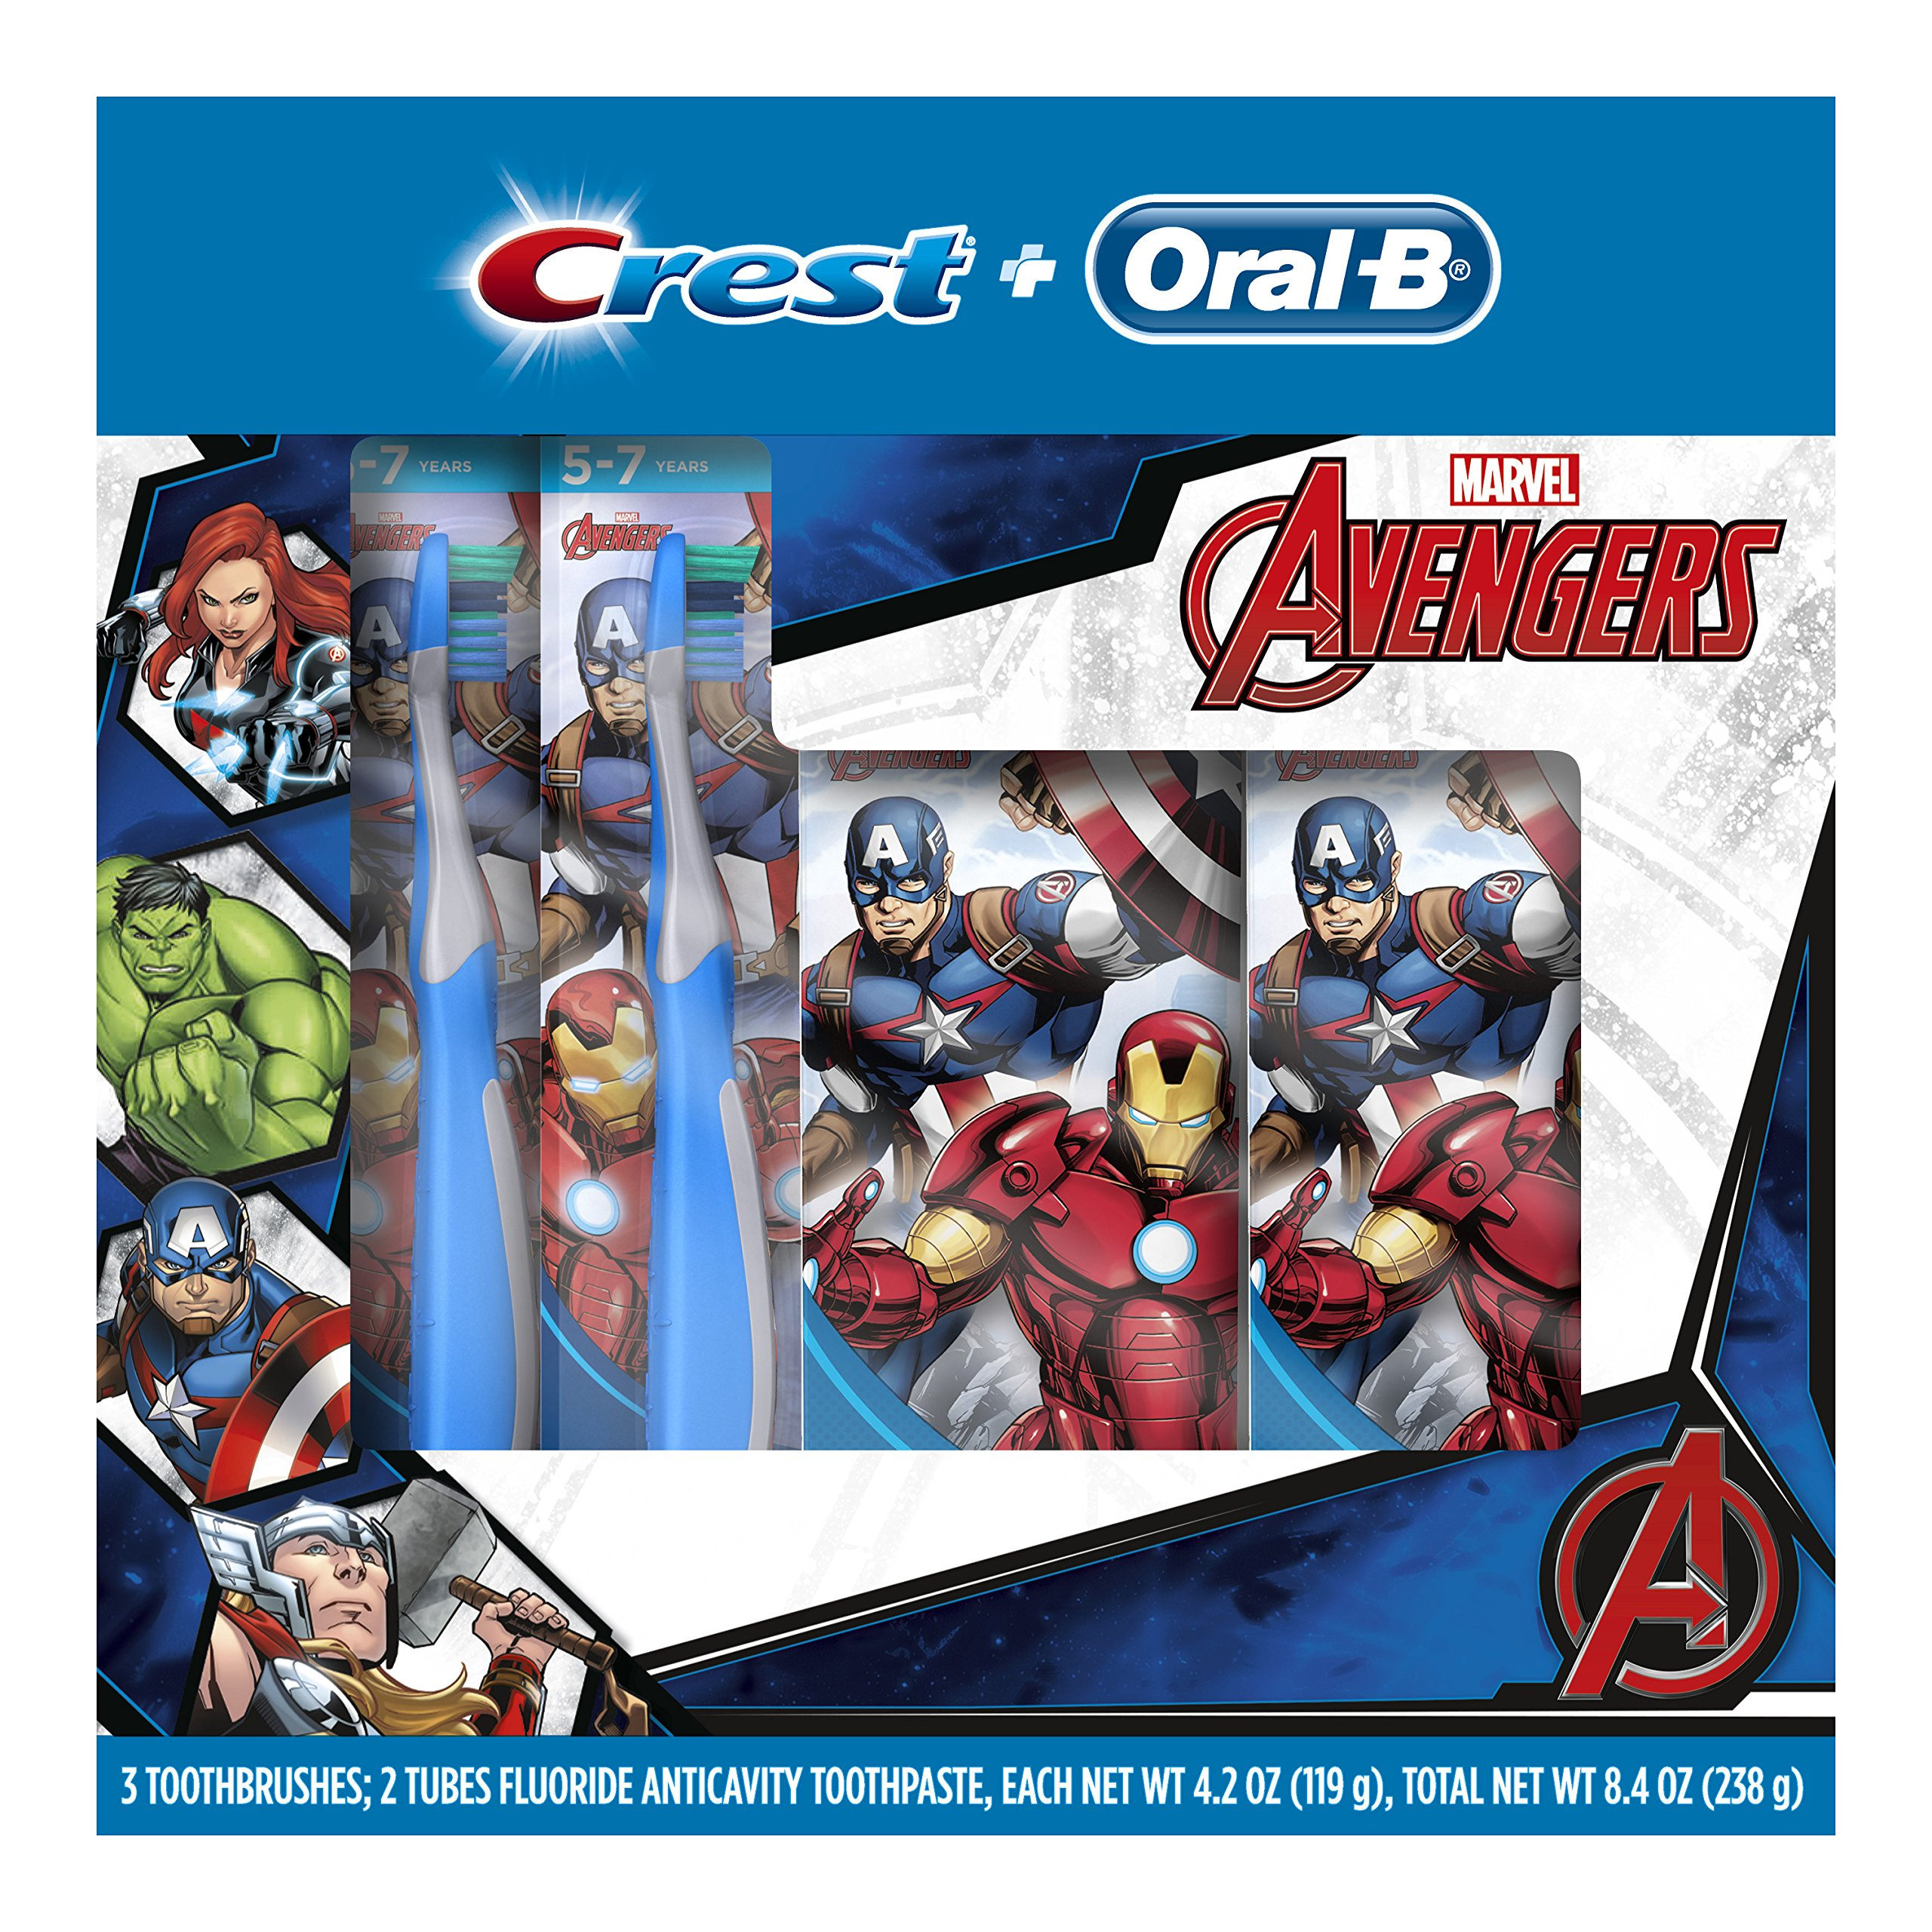 Oral-B and Crest Kids Pack Featuring Marvel's Avengers, Kids Two Fluoride Anticavity Toothpastes and Three Toothbrushes